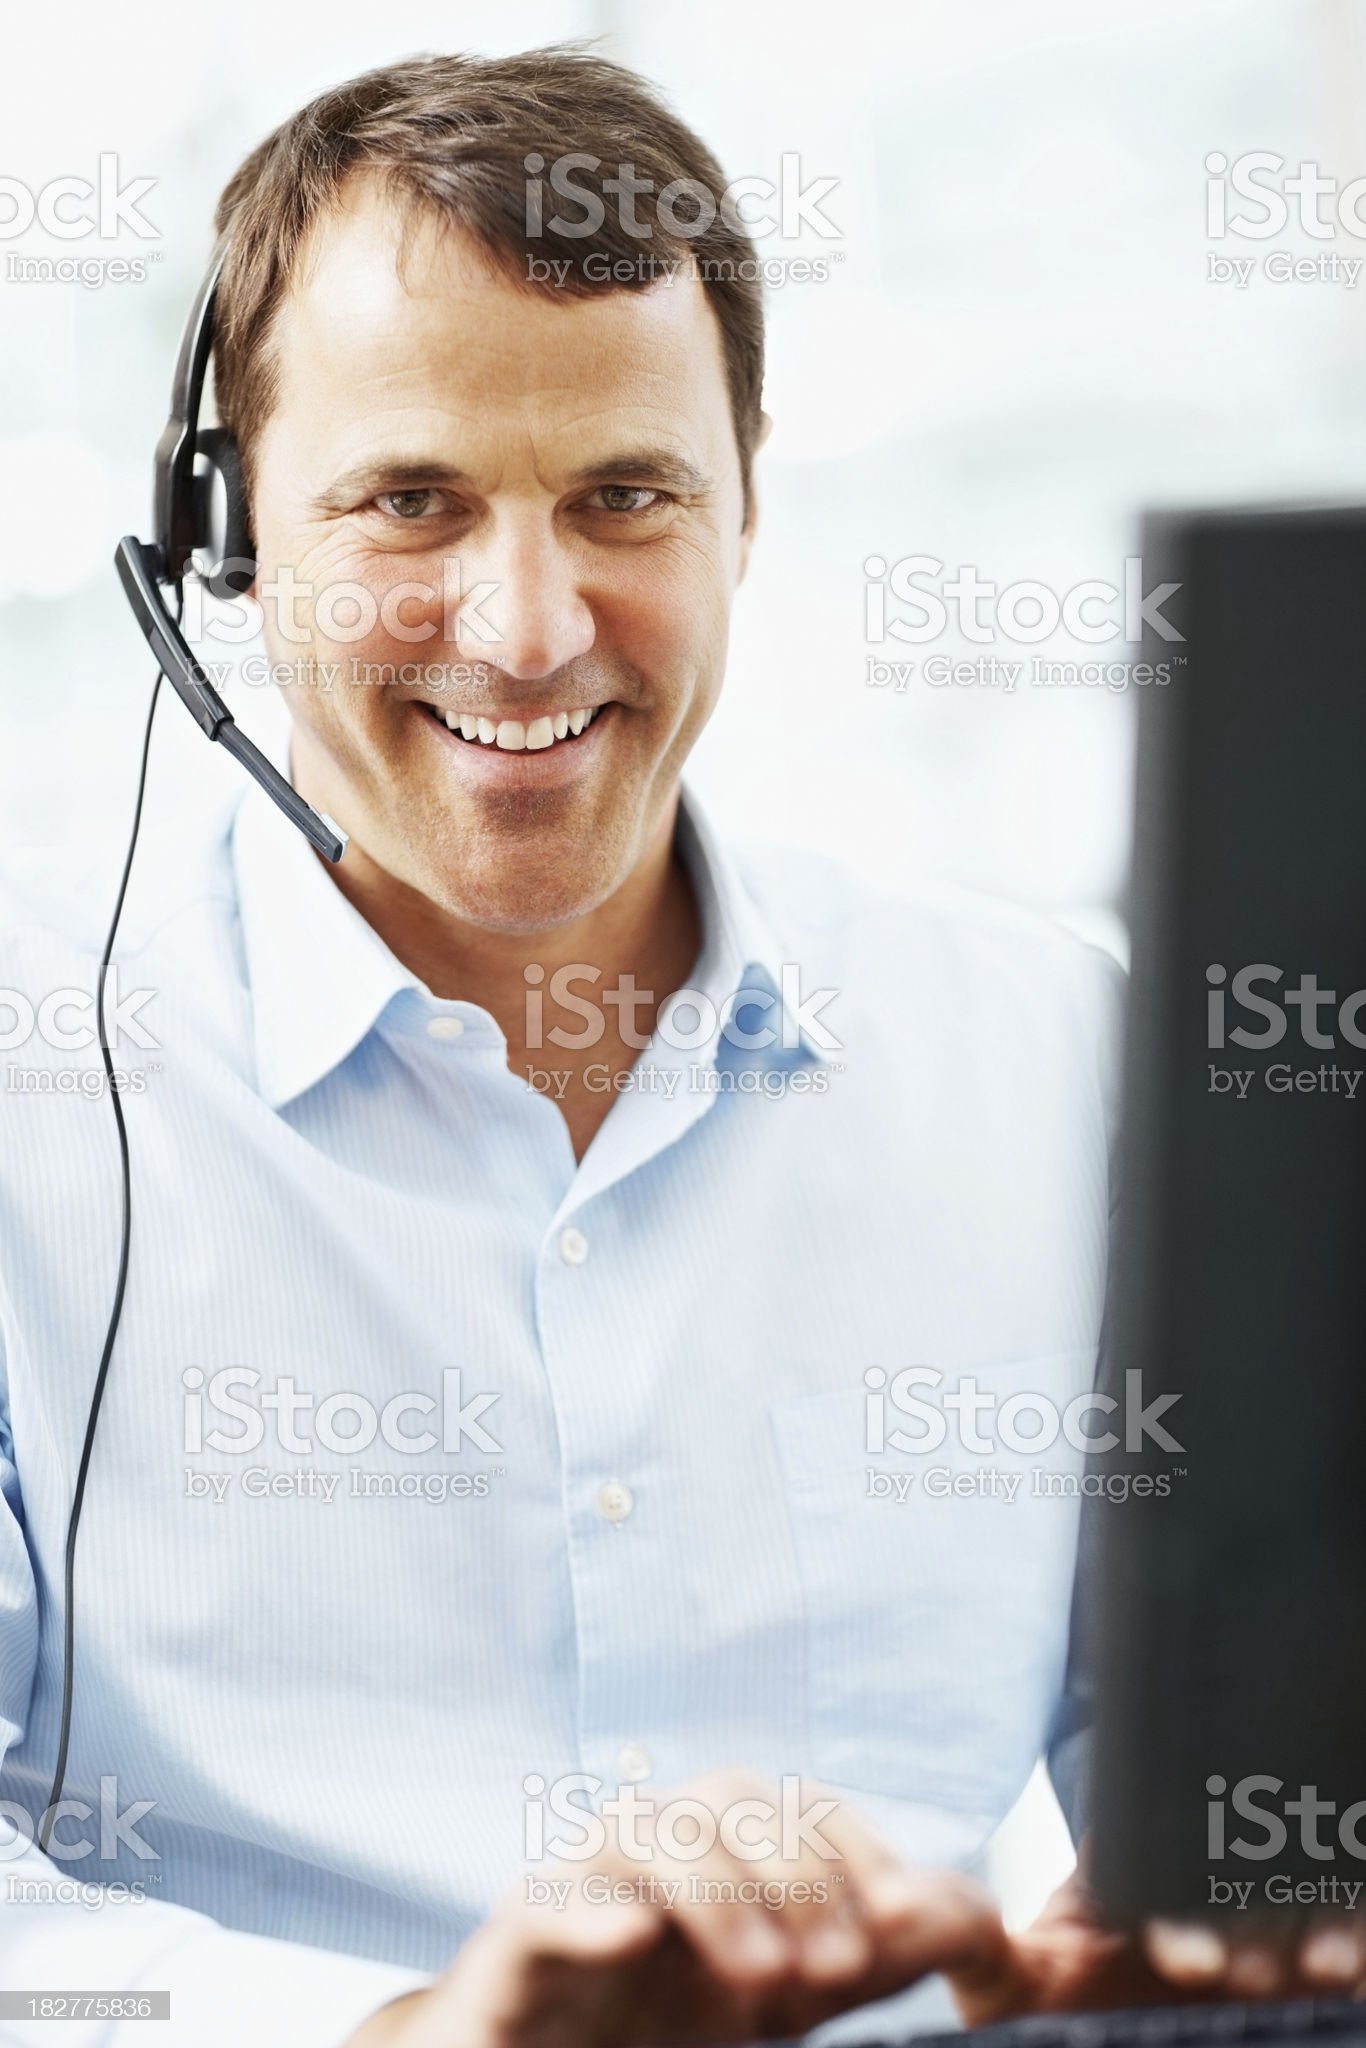 Portrait of a handsome call center employee working on computer royalty-free stock photo